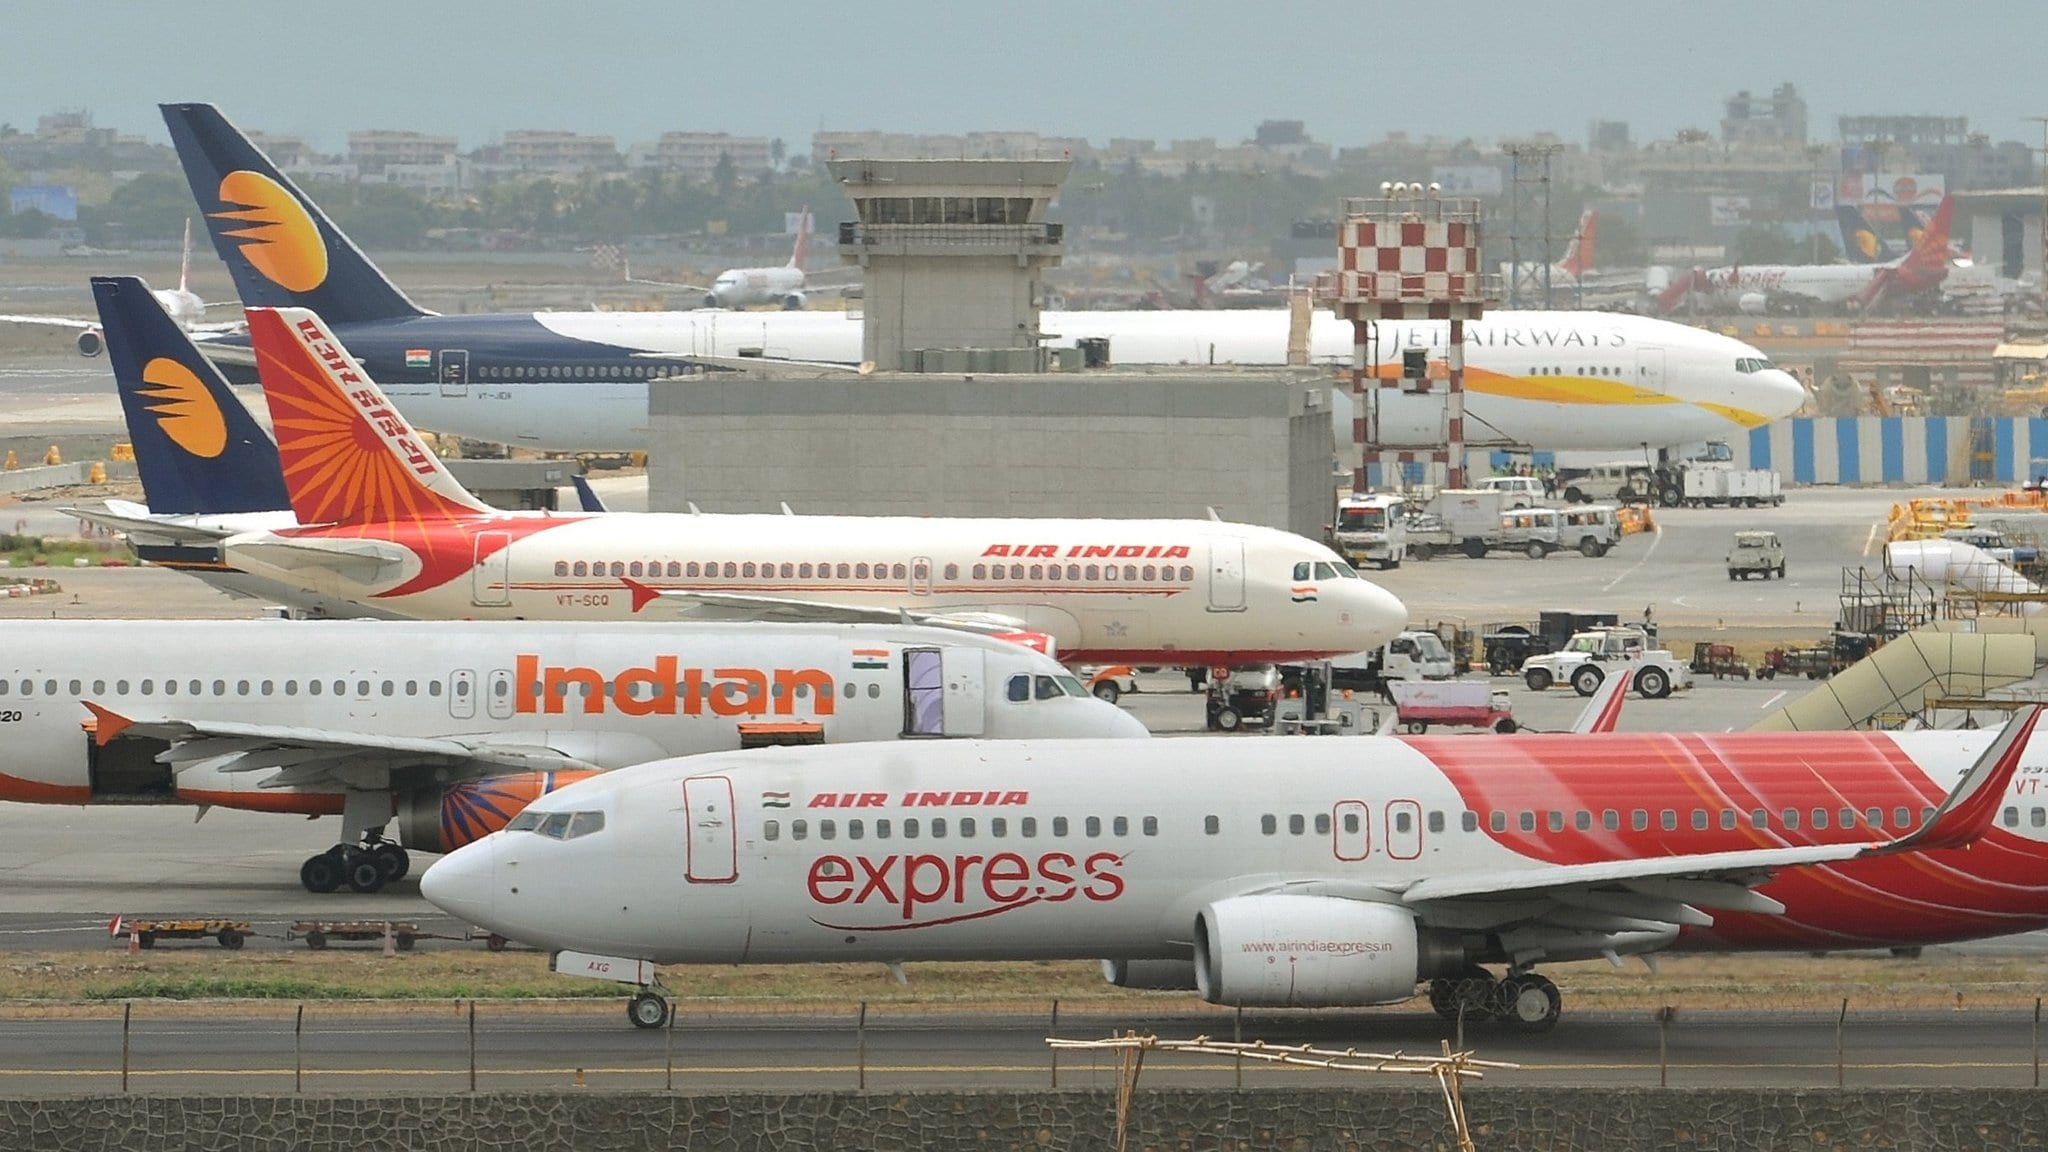 indian-aviation-a-struggle-to-survive-for-airlines